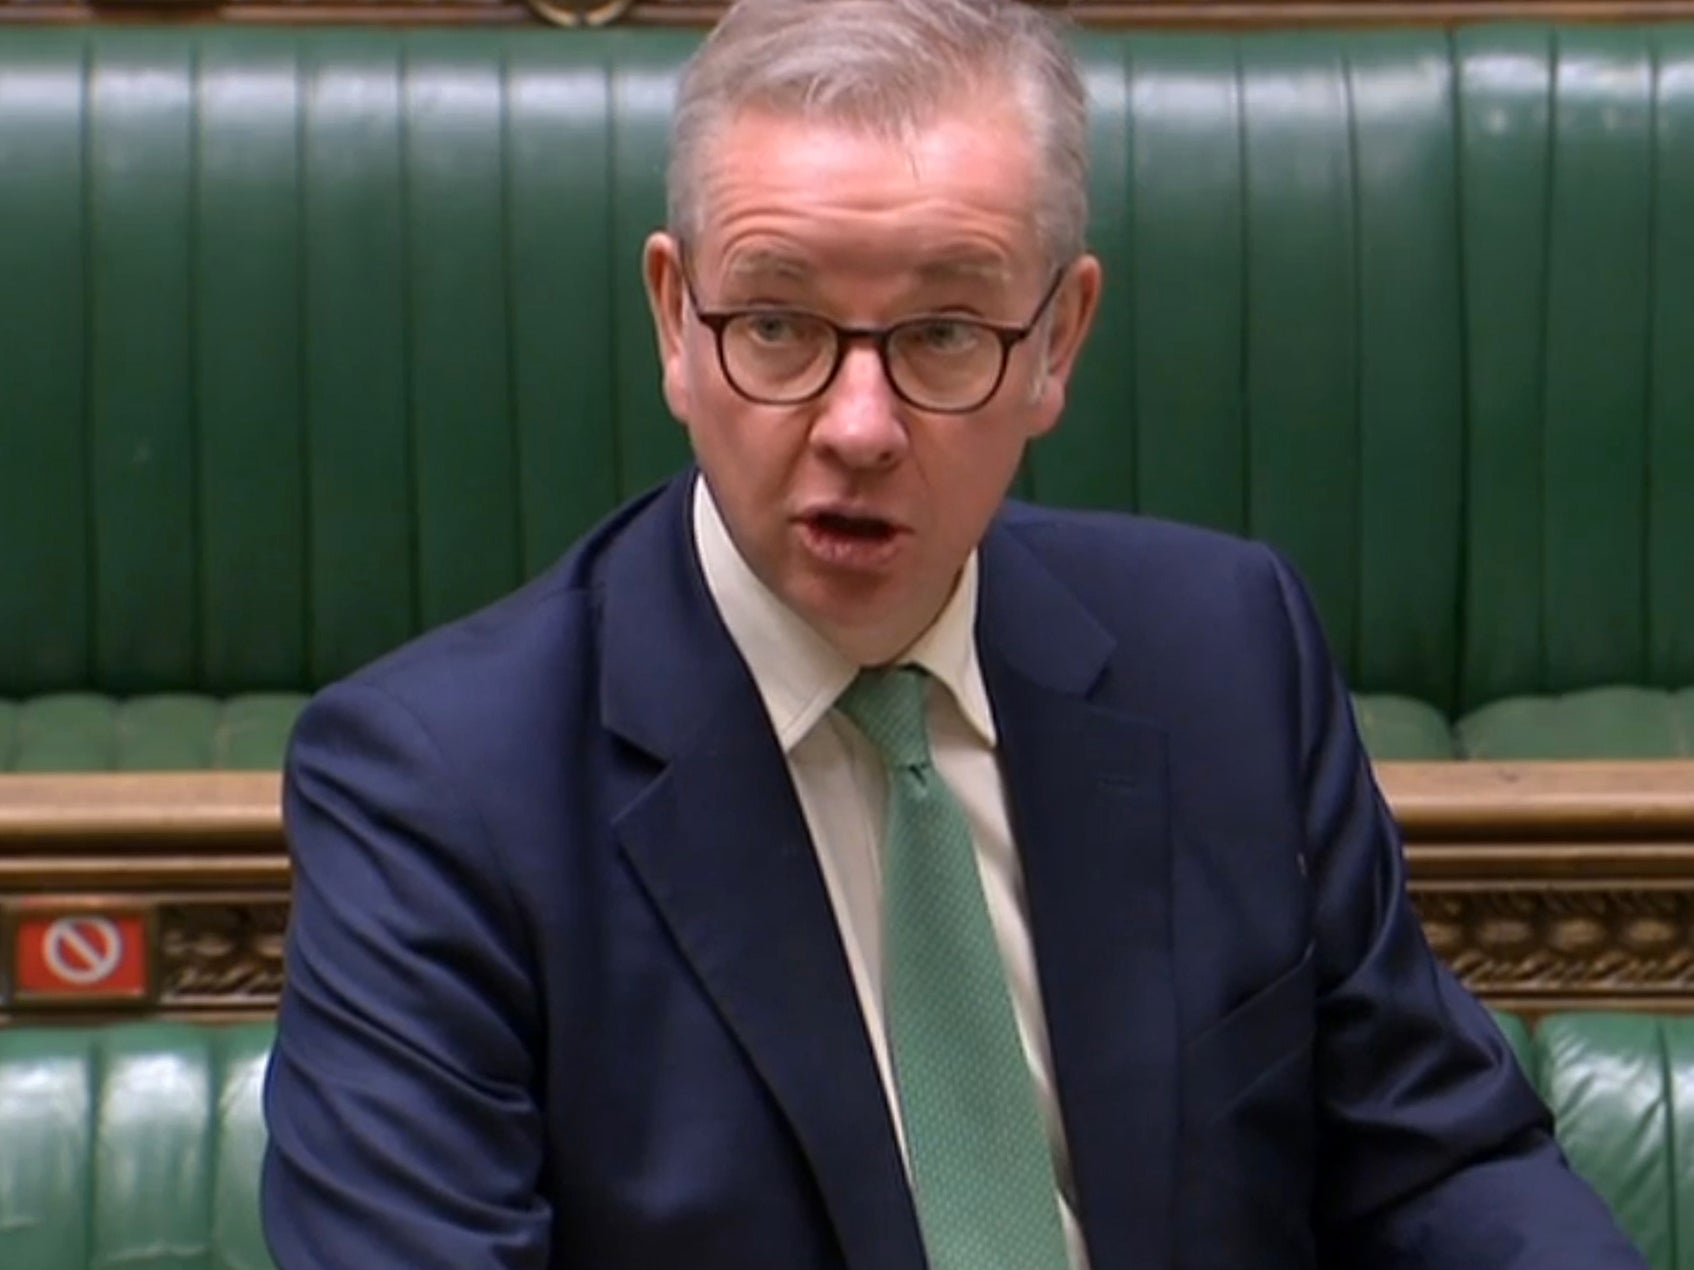 How sobering to think that in less than three months, Michael Gove will be even more shameless than he is now